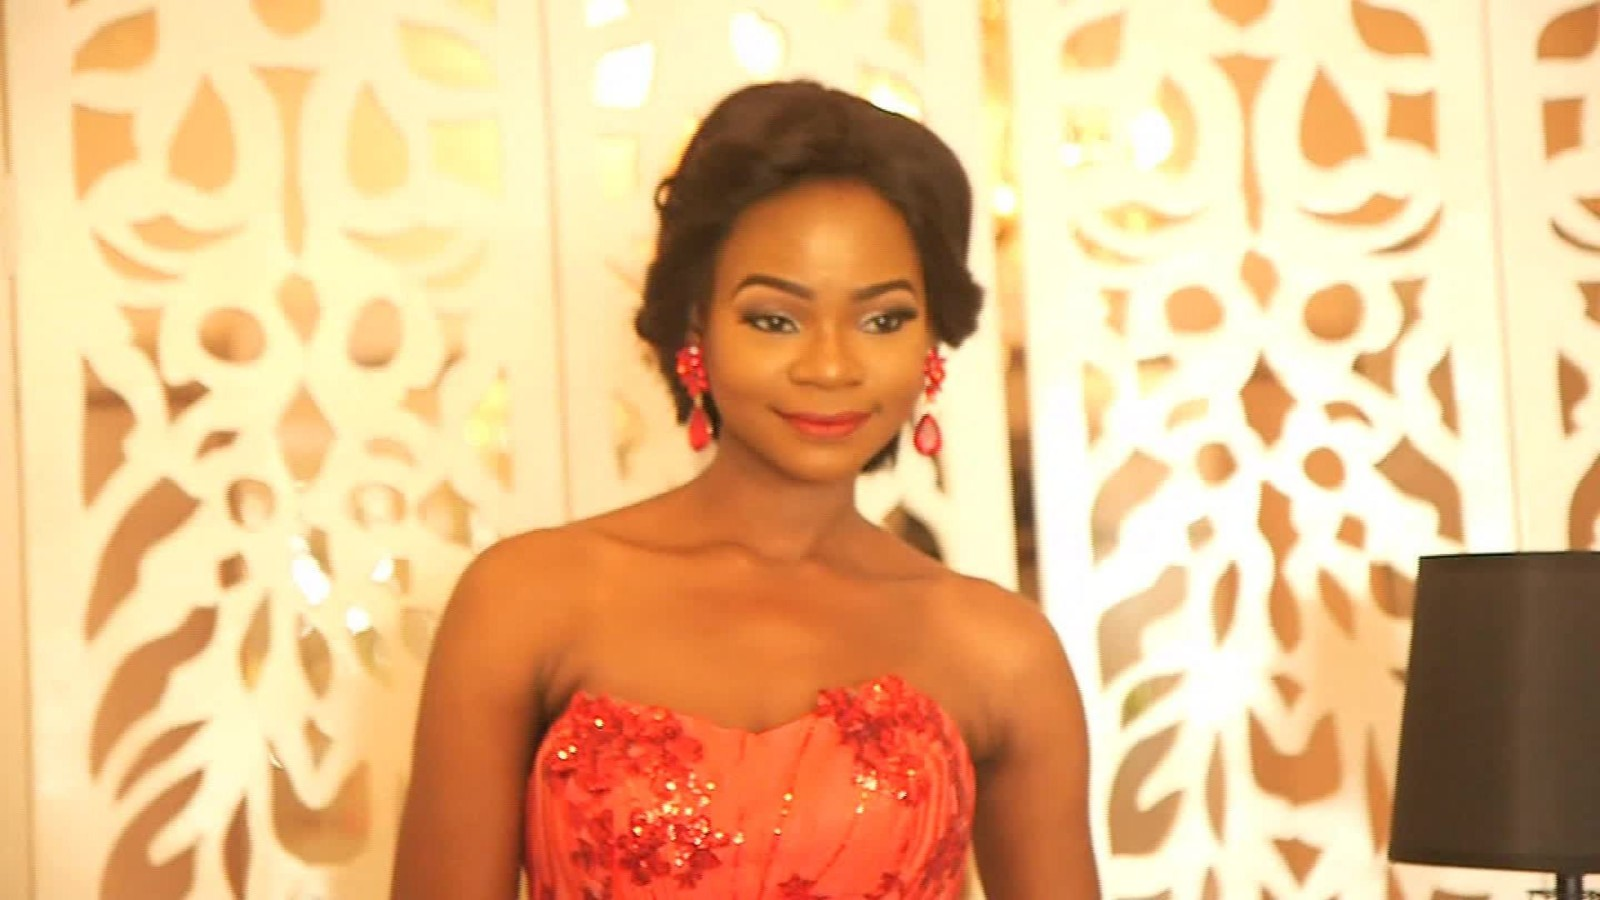 As a bread saleswoman in Nigeria, became a model